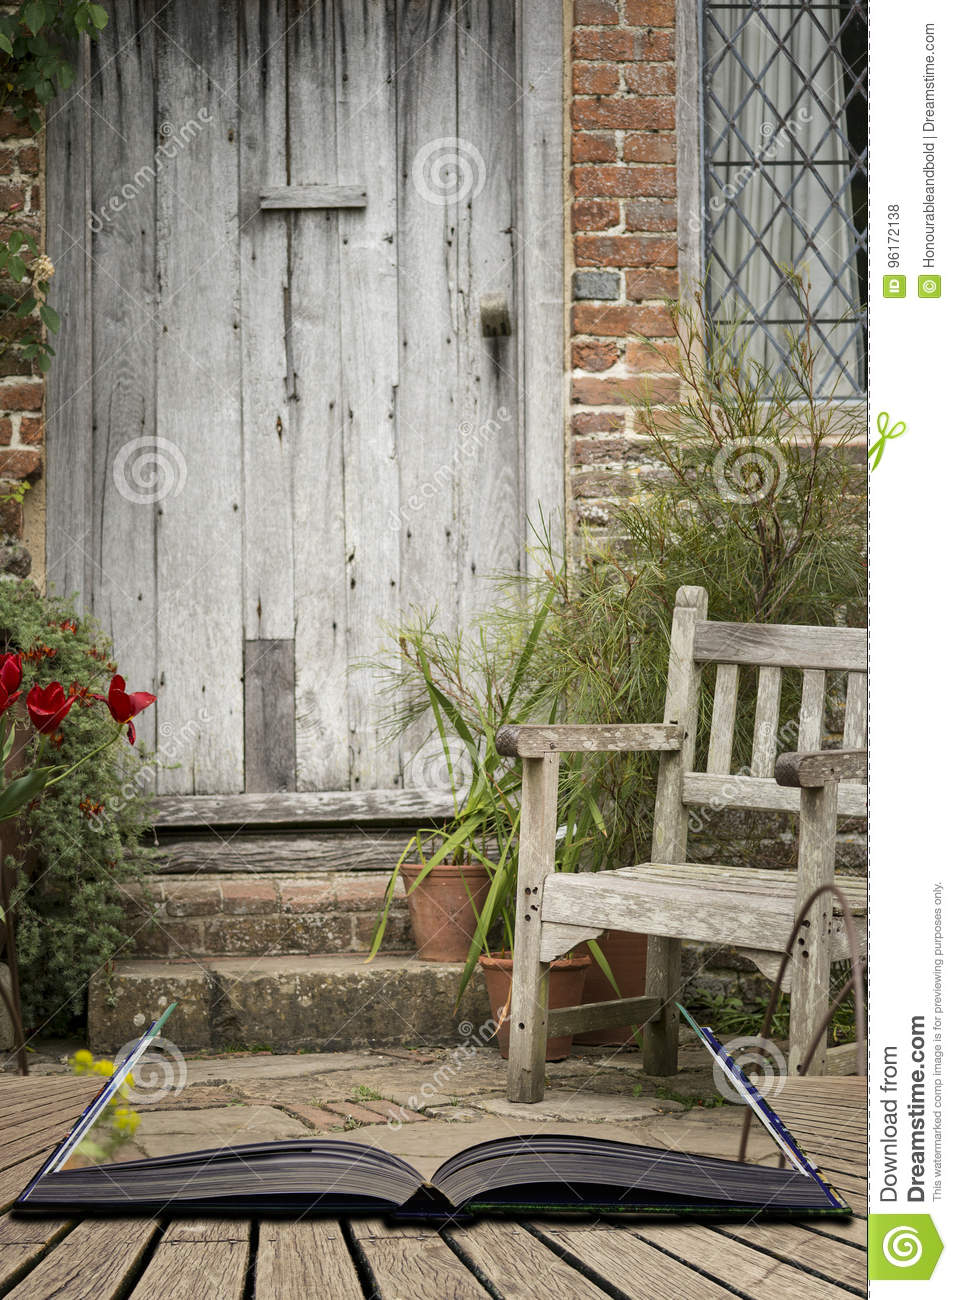 Typical Quintessential Old English Country Garden Image Of Wooden